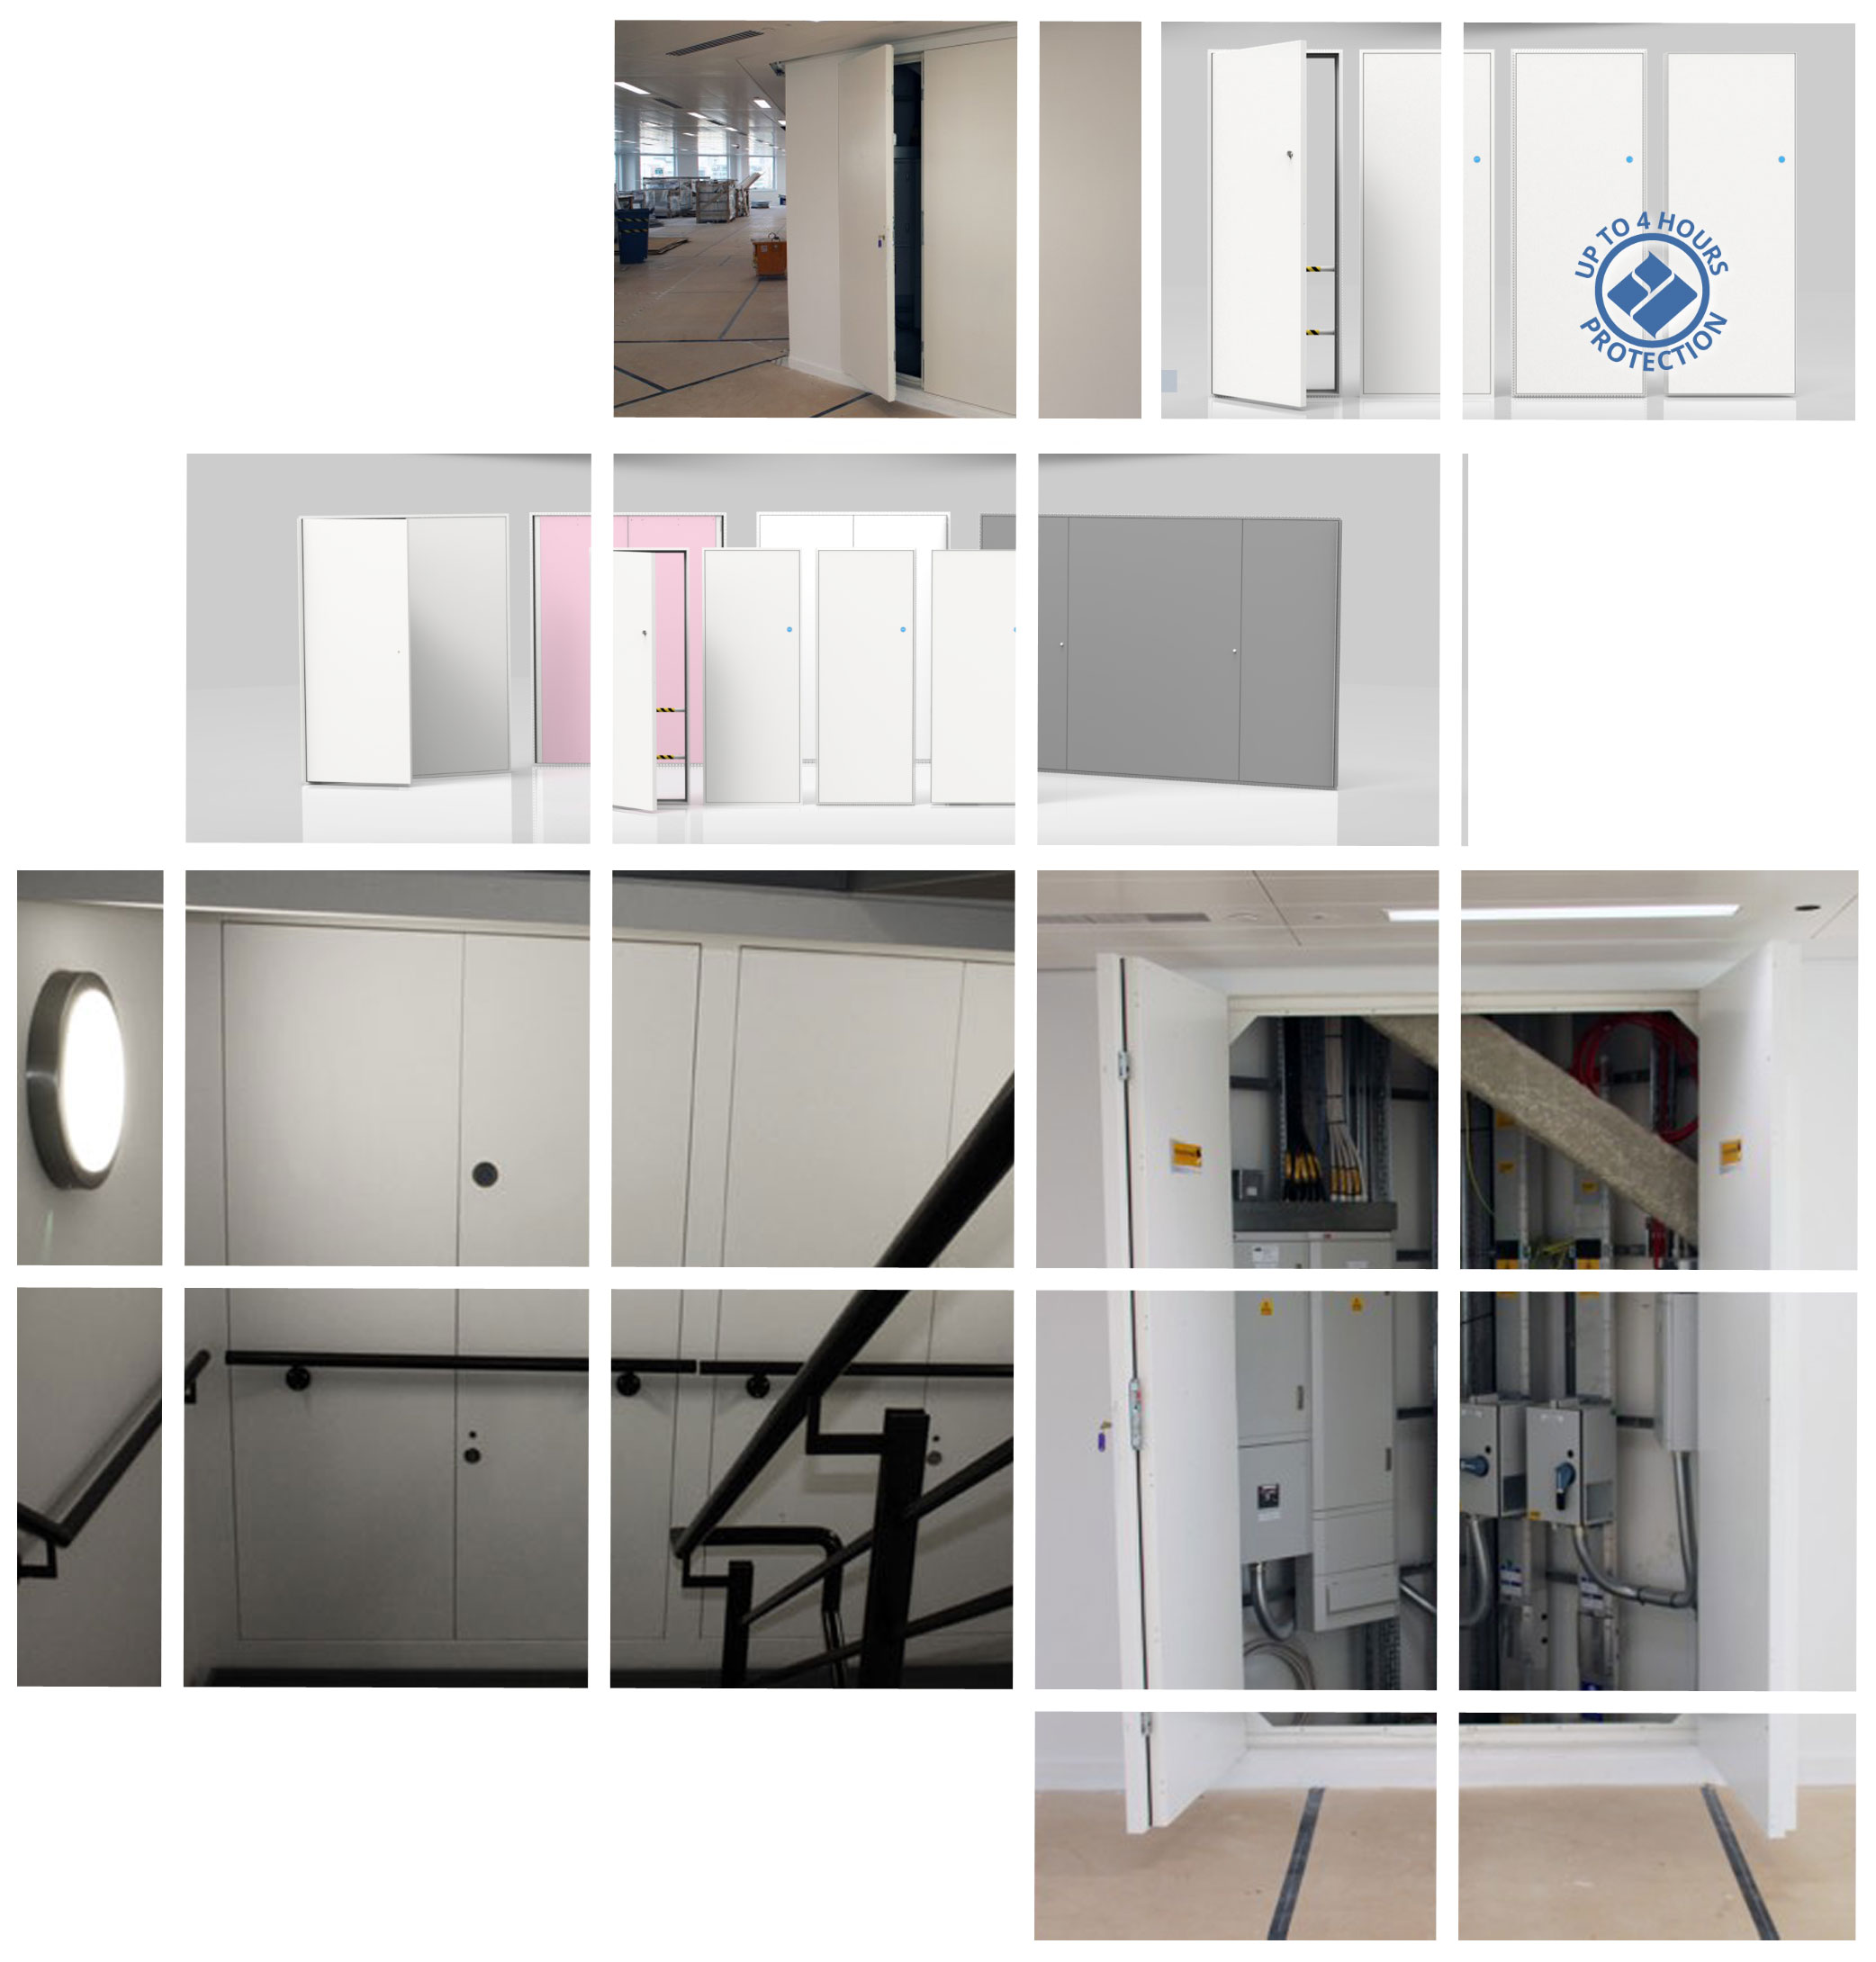 Concealed Riser Doors are suitable for riser, duct and pod access applications.